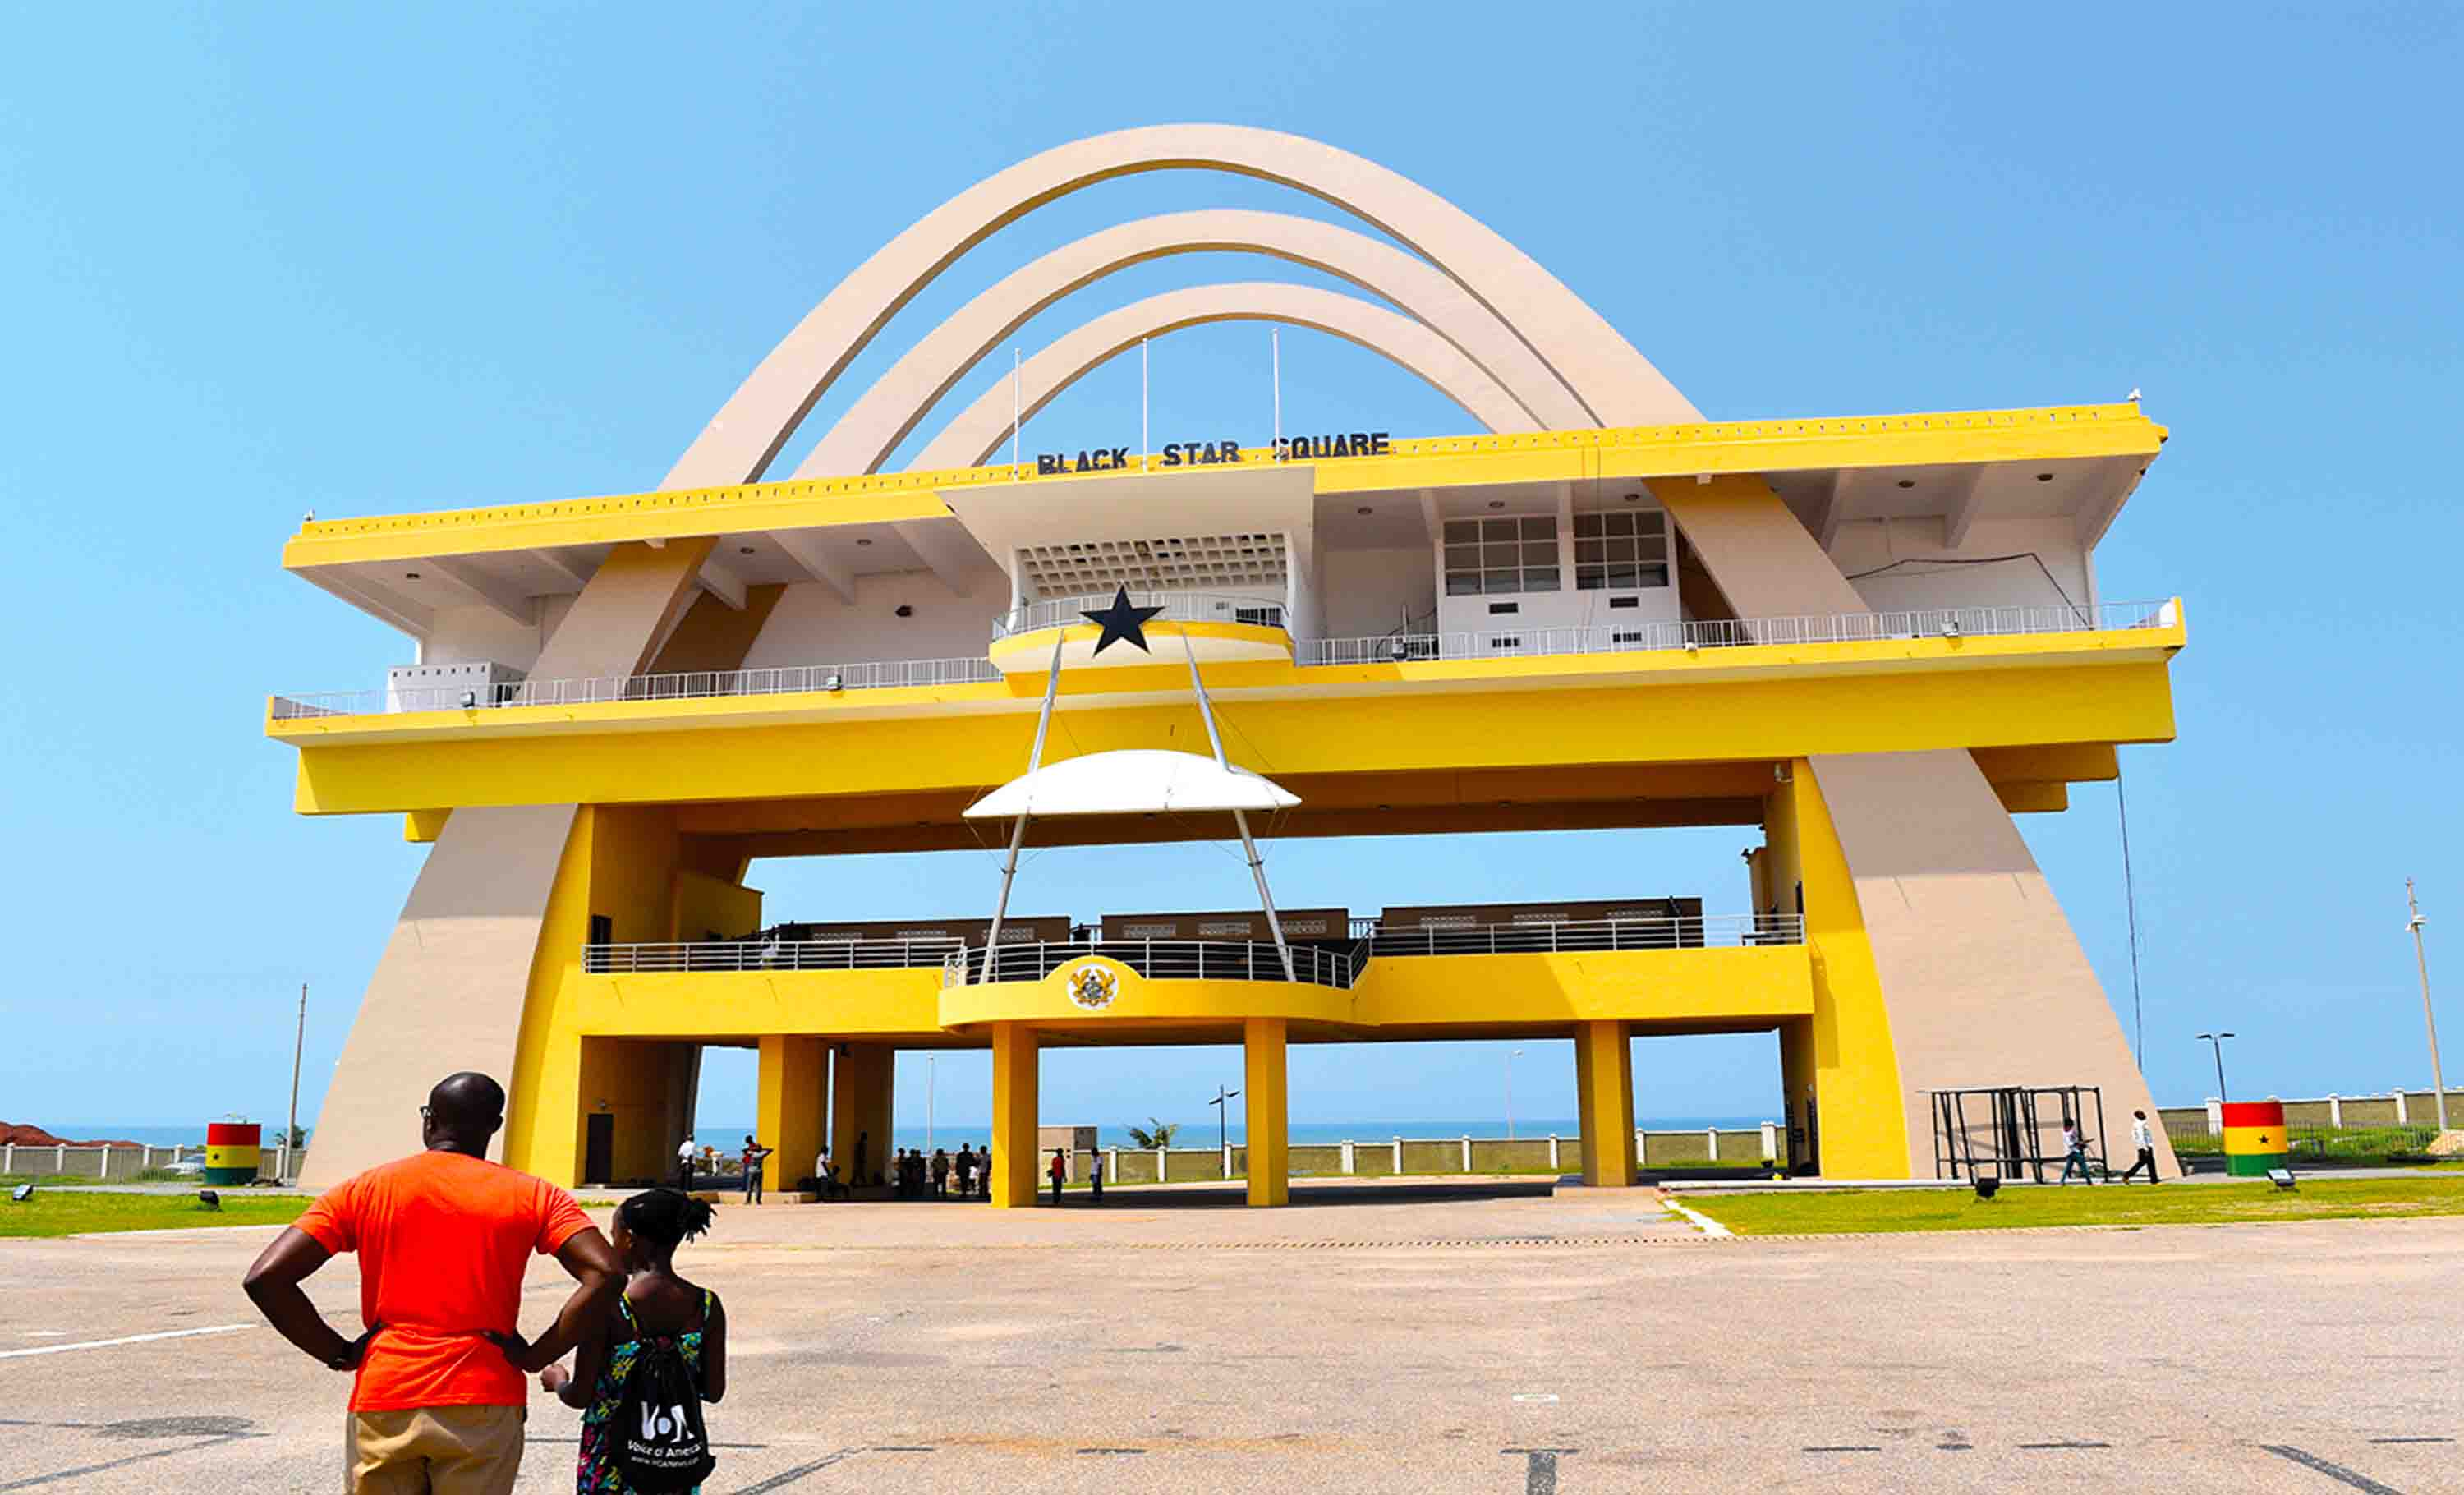 The Independence Square aka Black Star Square in Accra, Ghana. It is the second-largest city square in the world after Tiananmen Square in China.